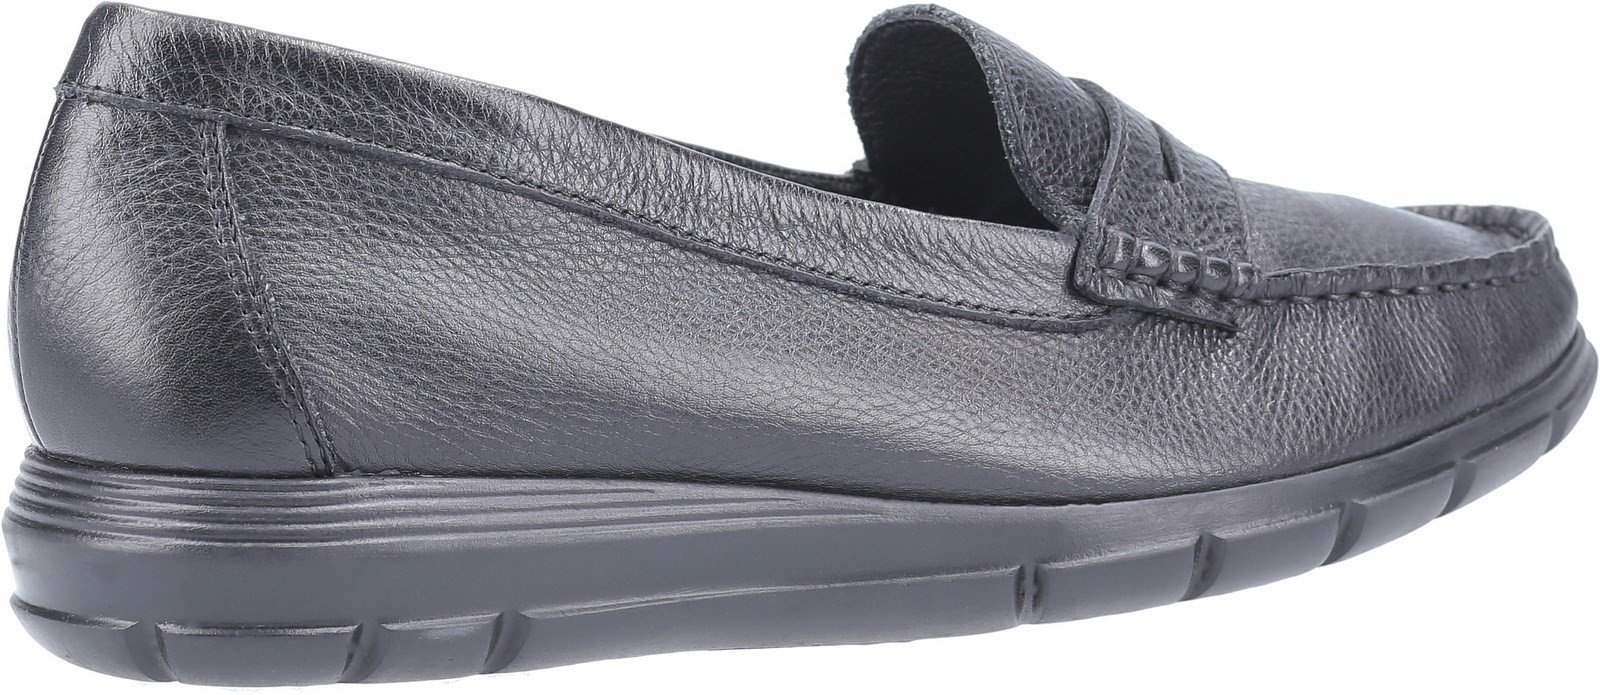 Hush Puppies Women's Paige Slip On Loafer Various Colours 30242 - Black 3